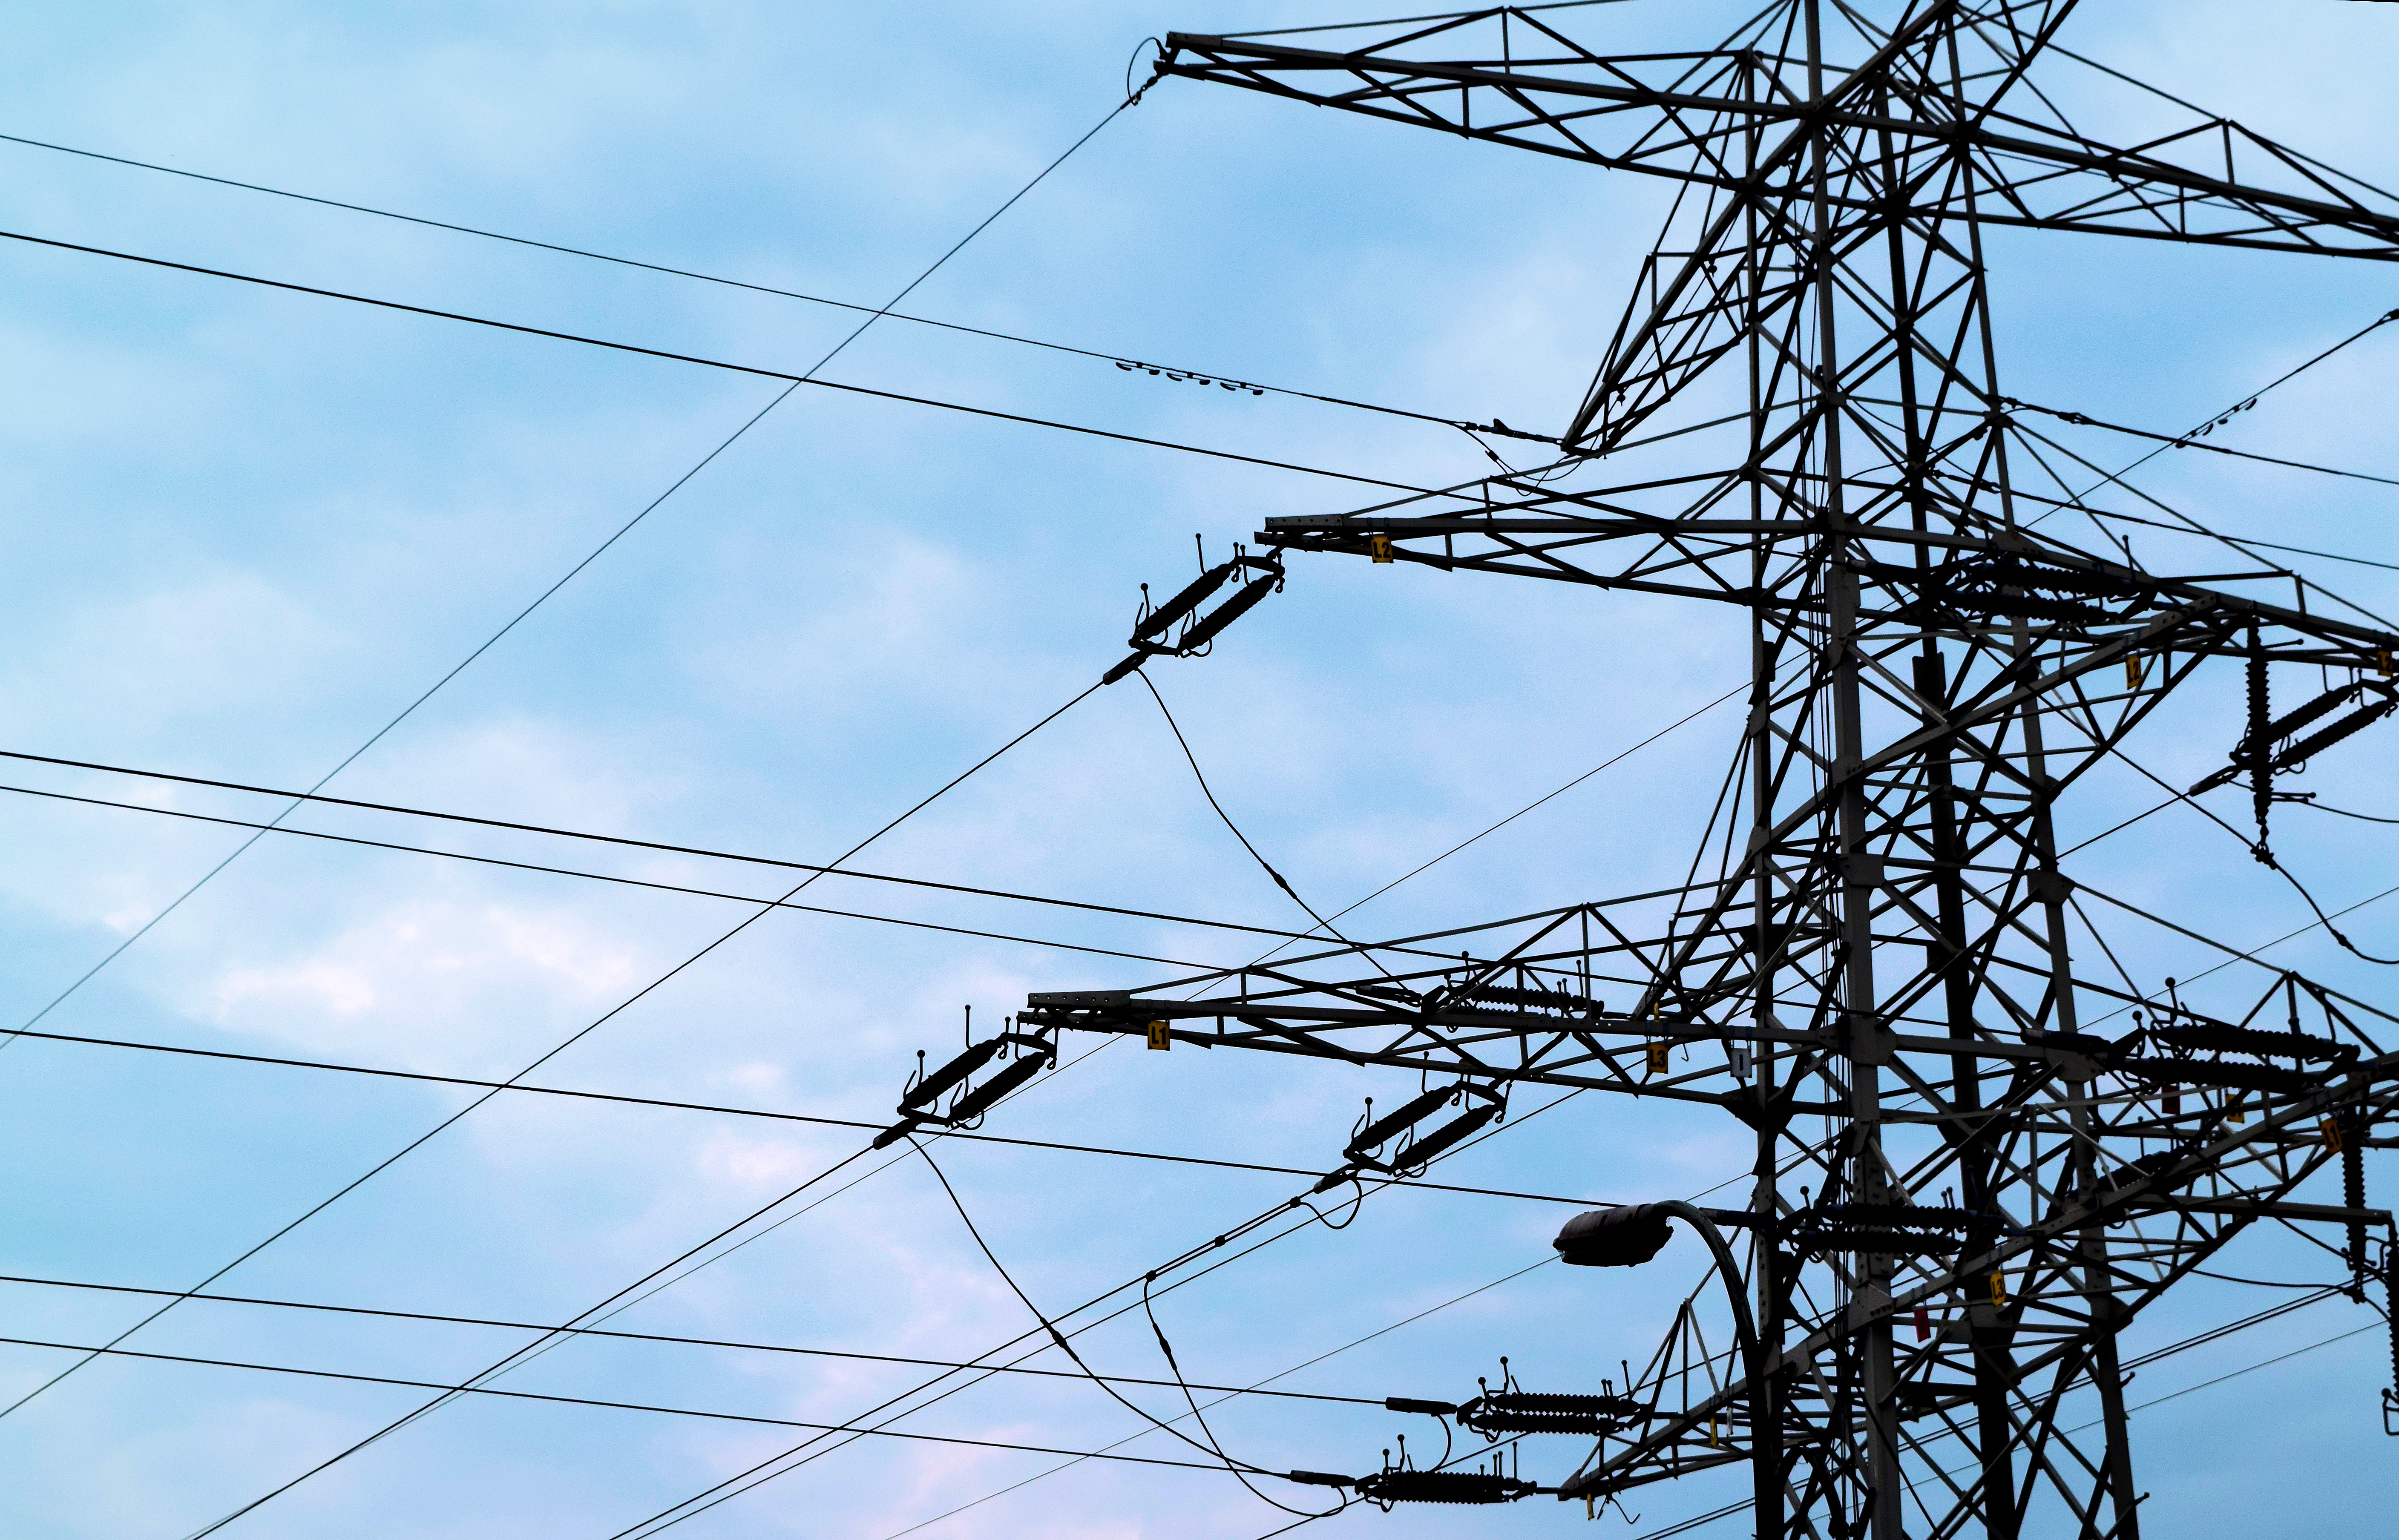 Free stock photo of blue sky, electric lines, electricity